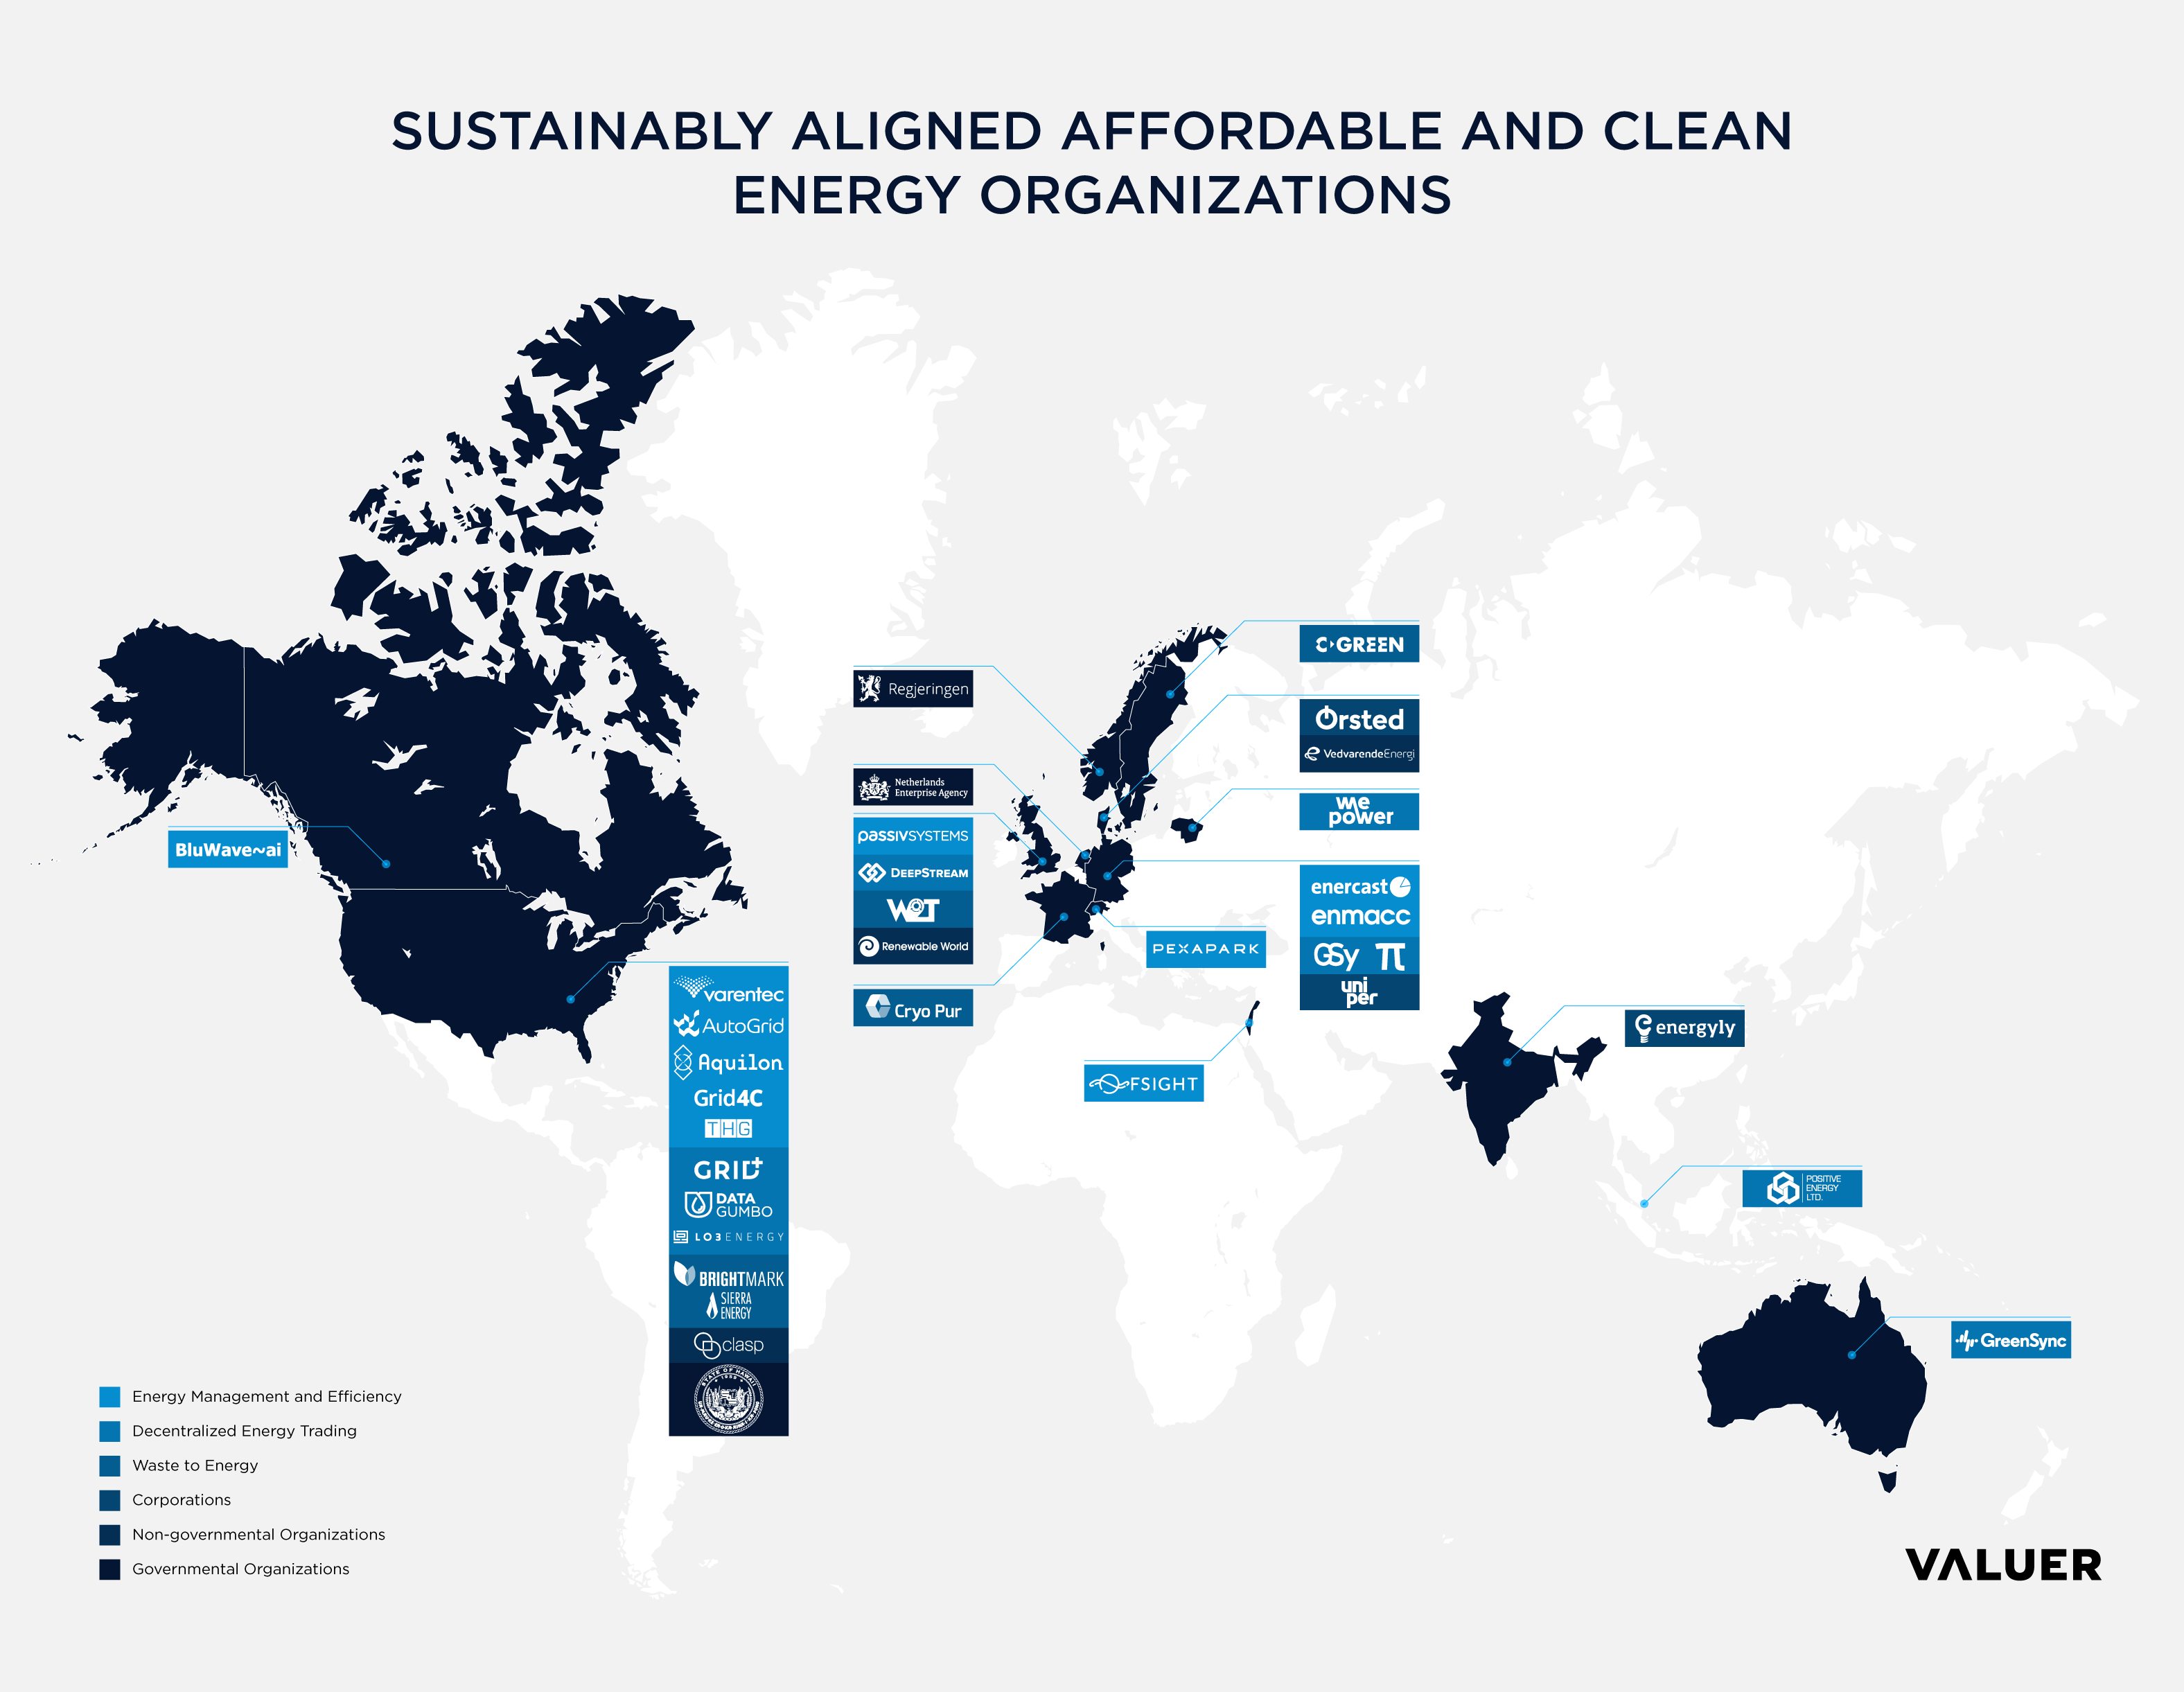 Sustain ably aligned affordable and clean energy organizations